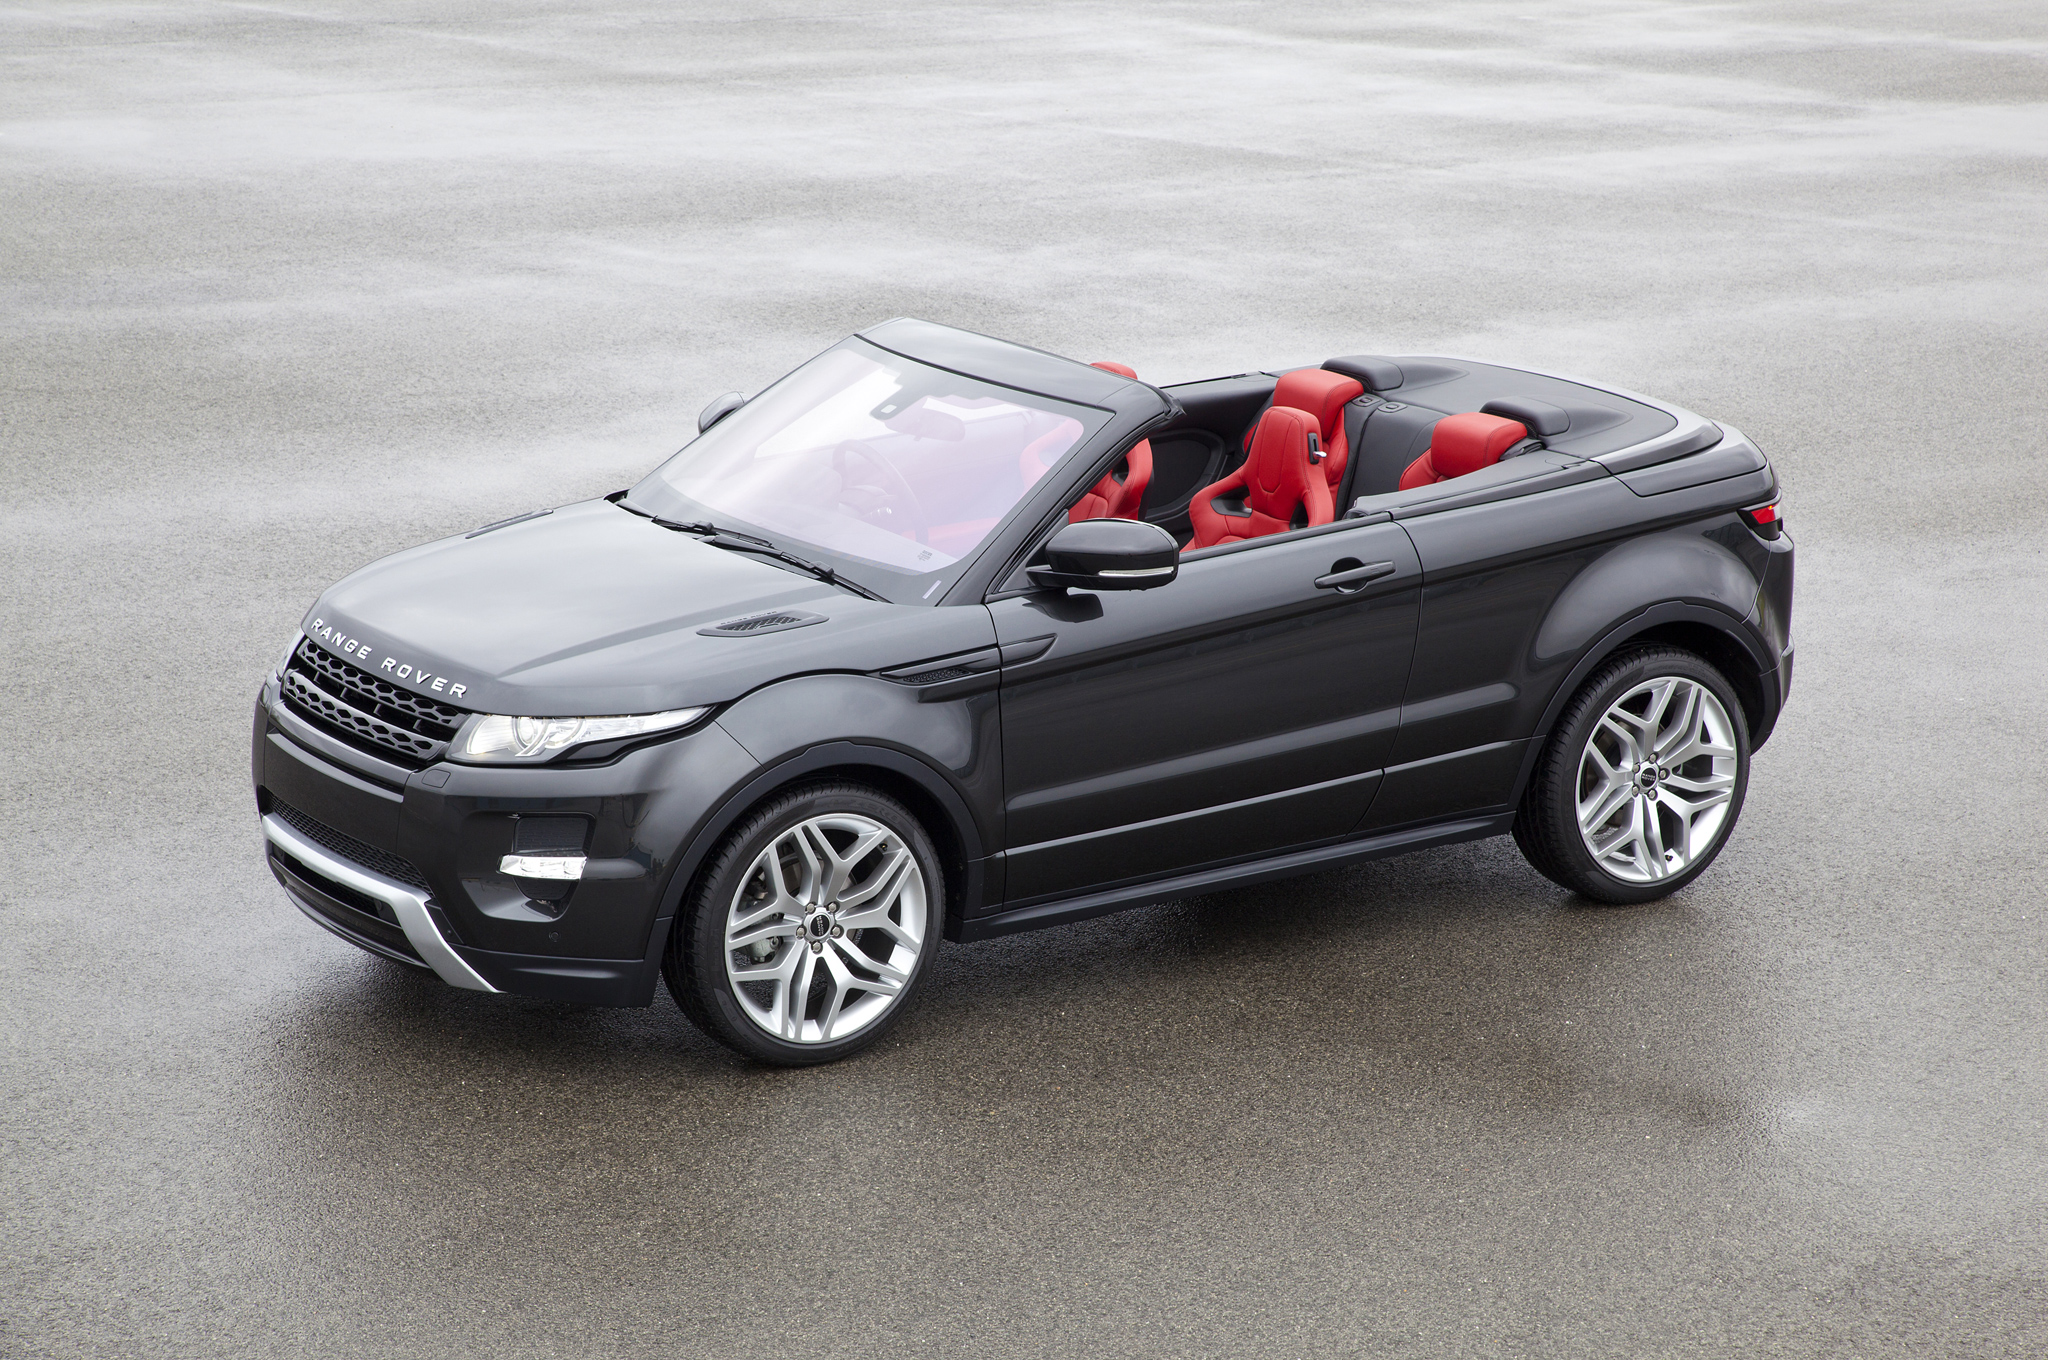 evoque cabriolet range rover se d couvre blog auto carid al. Black Bedroom Furniture Sets. Home Design Ideas